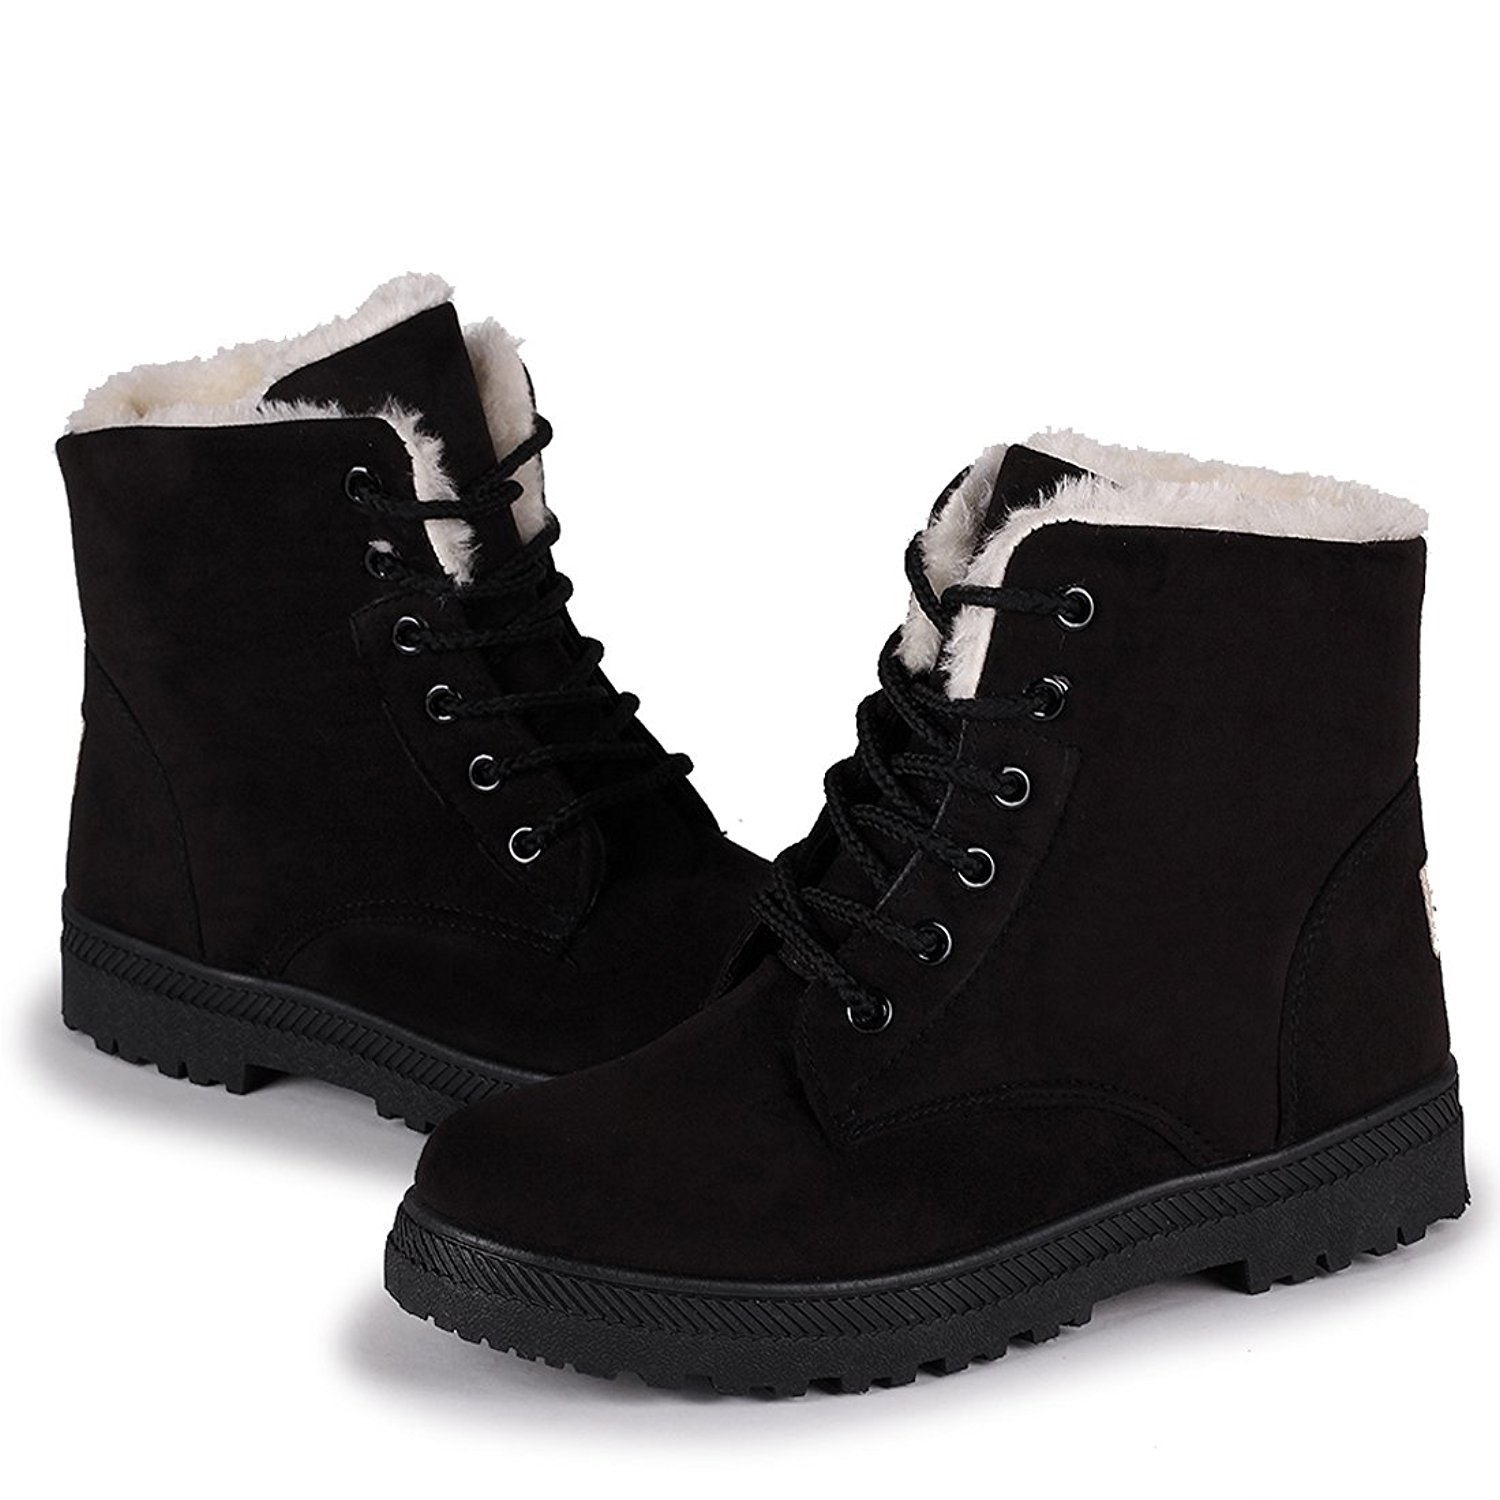 womens winter boots amazon.com | susanny suede flat platform sneaker shoes plus velvet winter  womenu0027s lace up UYZTPWM